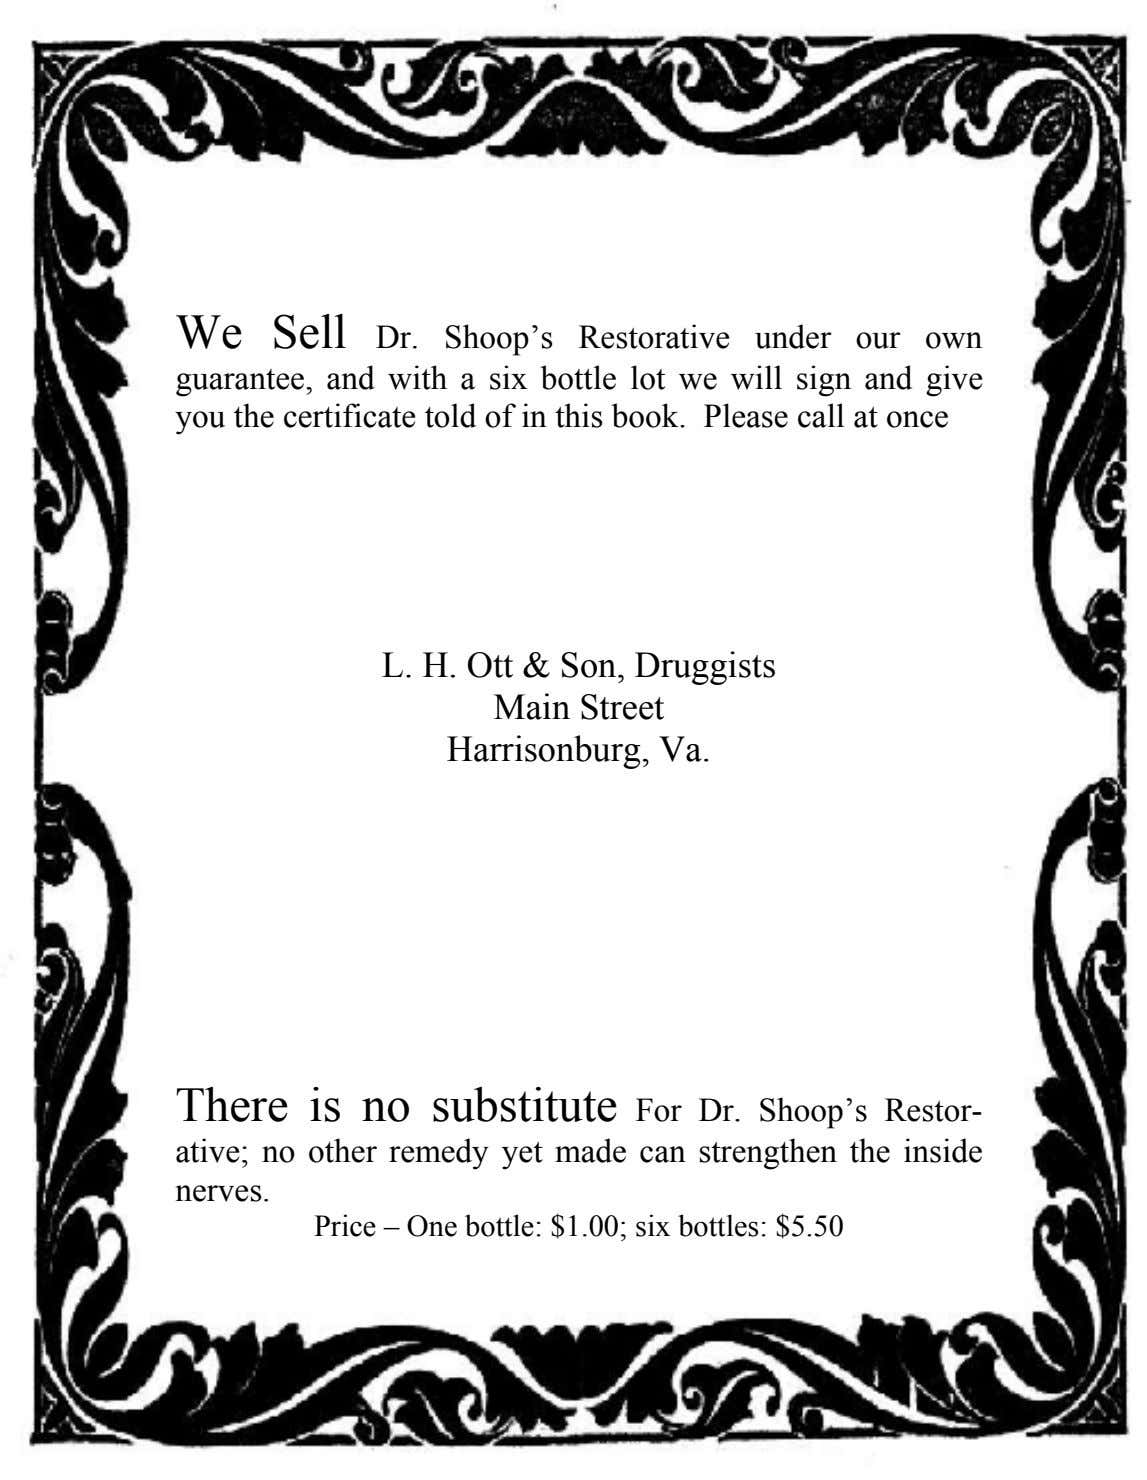 We Sell Dr. Shoop's Restorative under our own guarantee, and with a six bottle lot